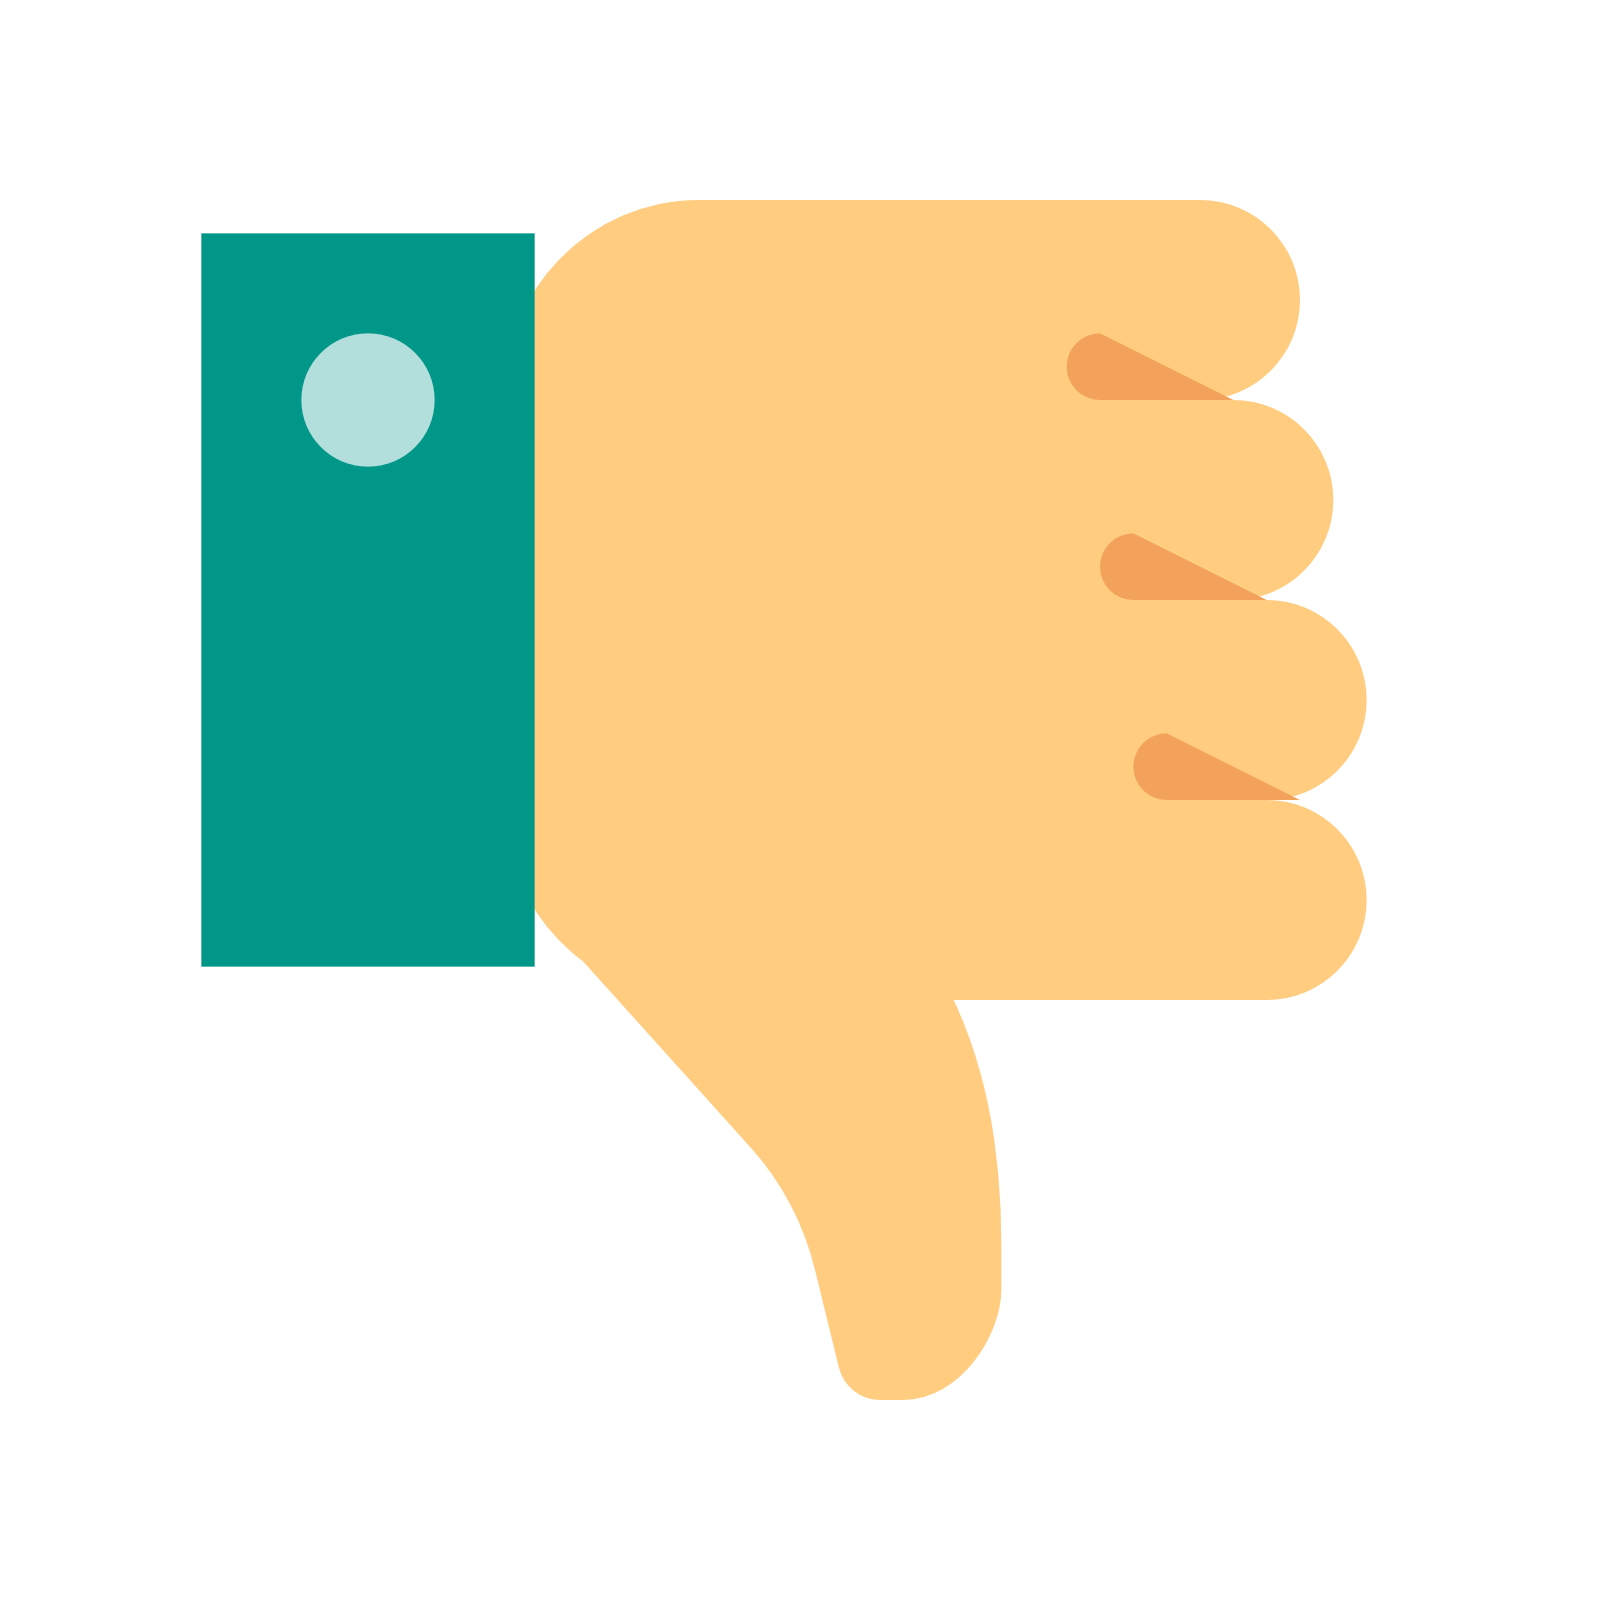 Thumb vector up and down. Free icon download thumbs